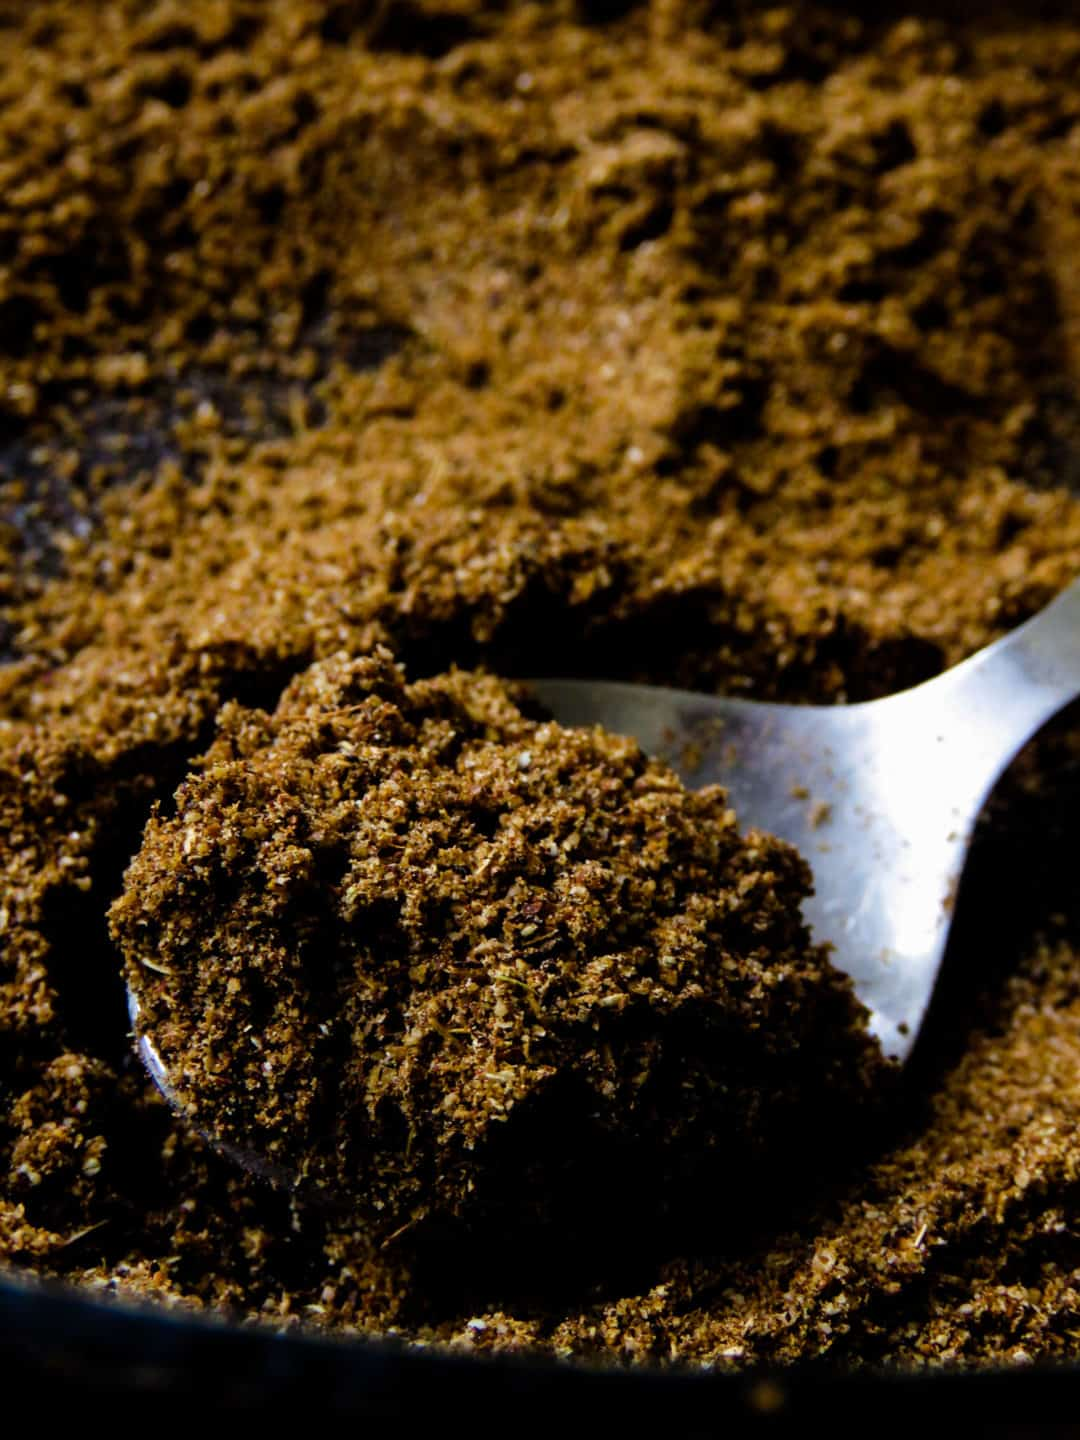 Indian homemade garam masala spice mix- stop using store-bought garam masala powder to cook your favorite Indian dishes,it's time you learned to make your own. it's more aromatic, flavorful and you'll never go back to buying the spice blend again.